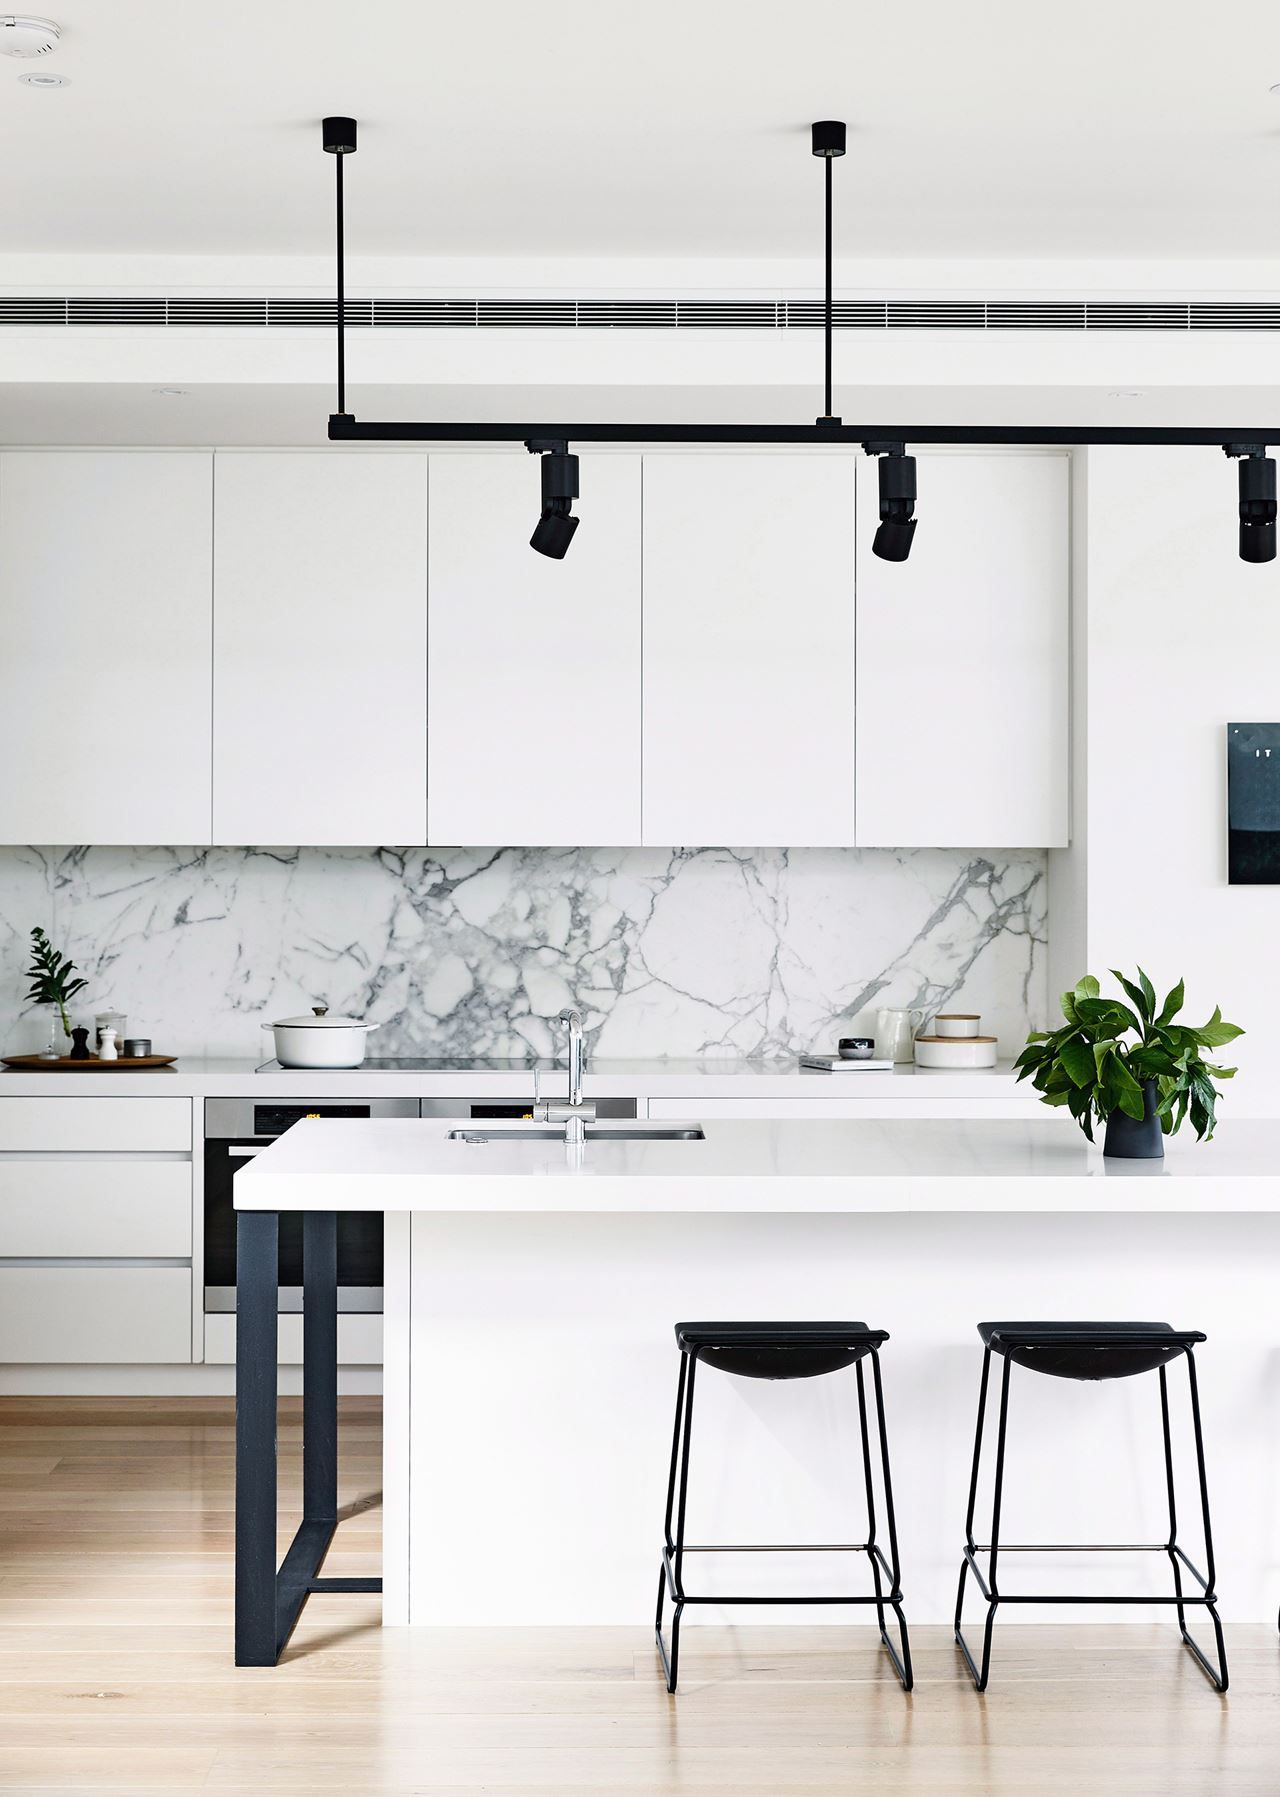 7 Kitchens With A New York City Vibe | White cabinets, Bar stool and ...